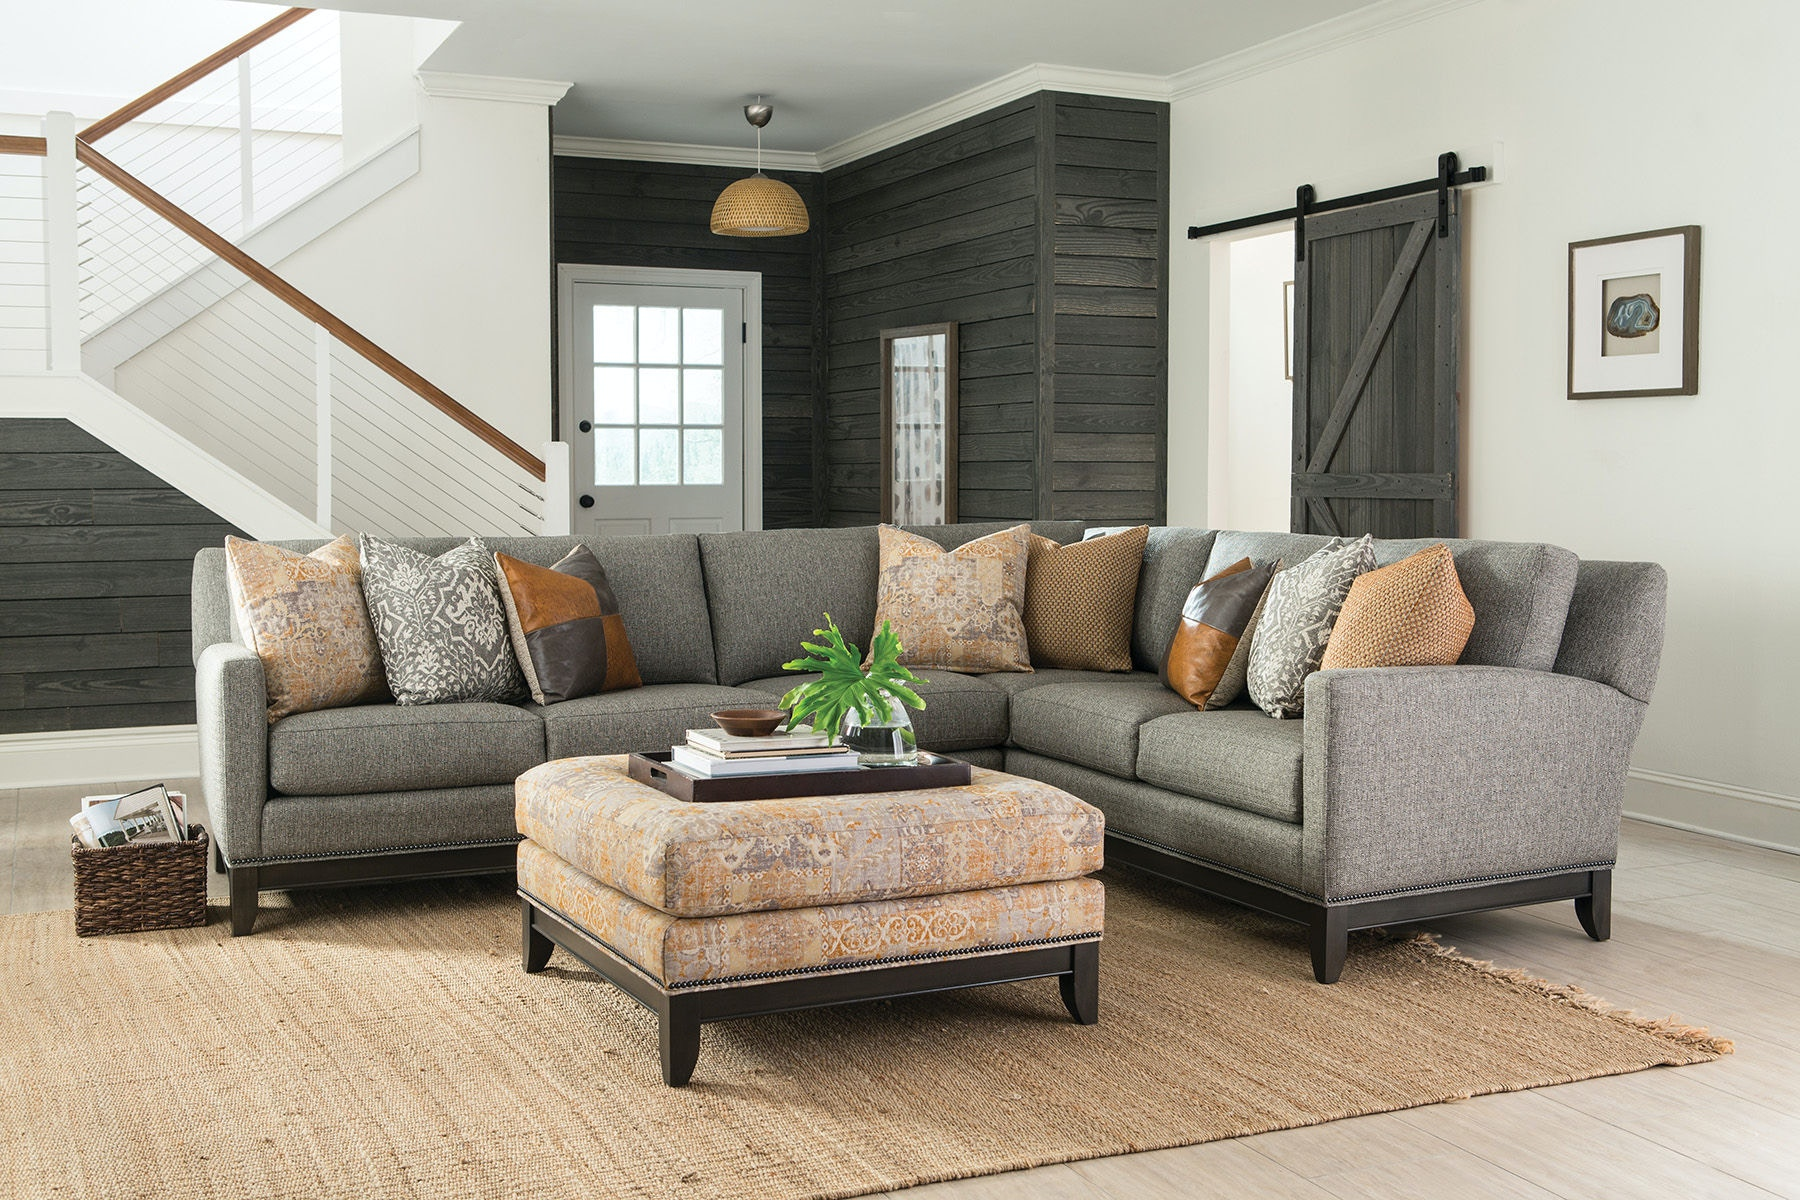 smith brothers 2piece sectional sb238sect1 - 2 Piece Sectional